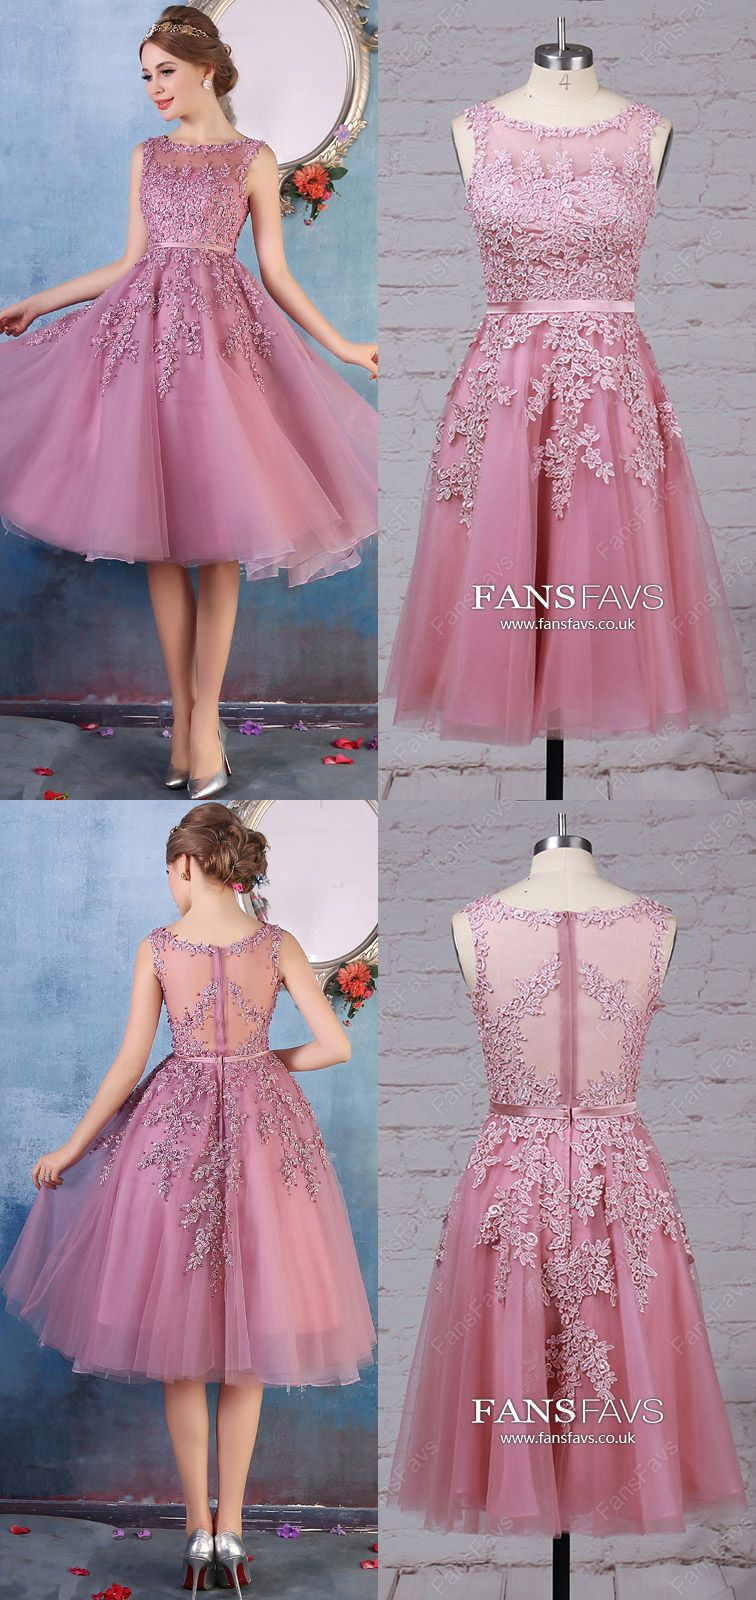 Pink homecoming dressesshort prom dressesjunior homecoming dresses